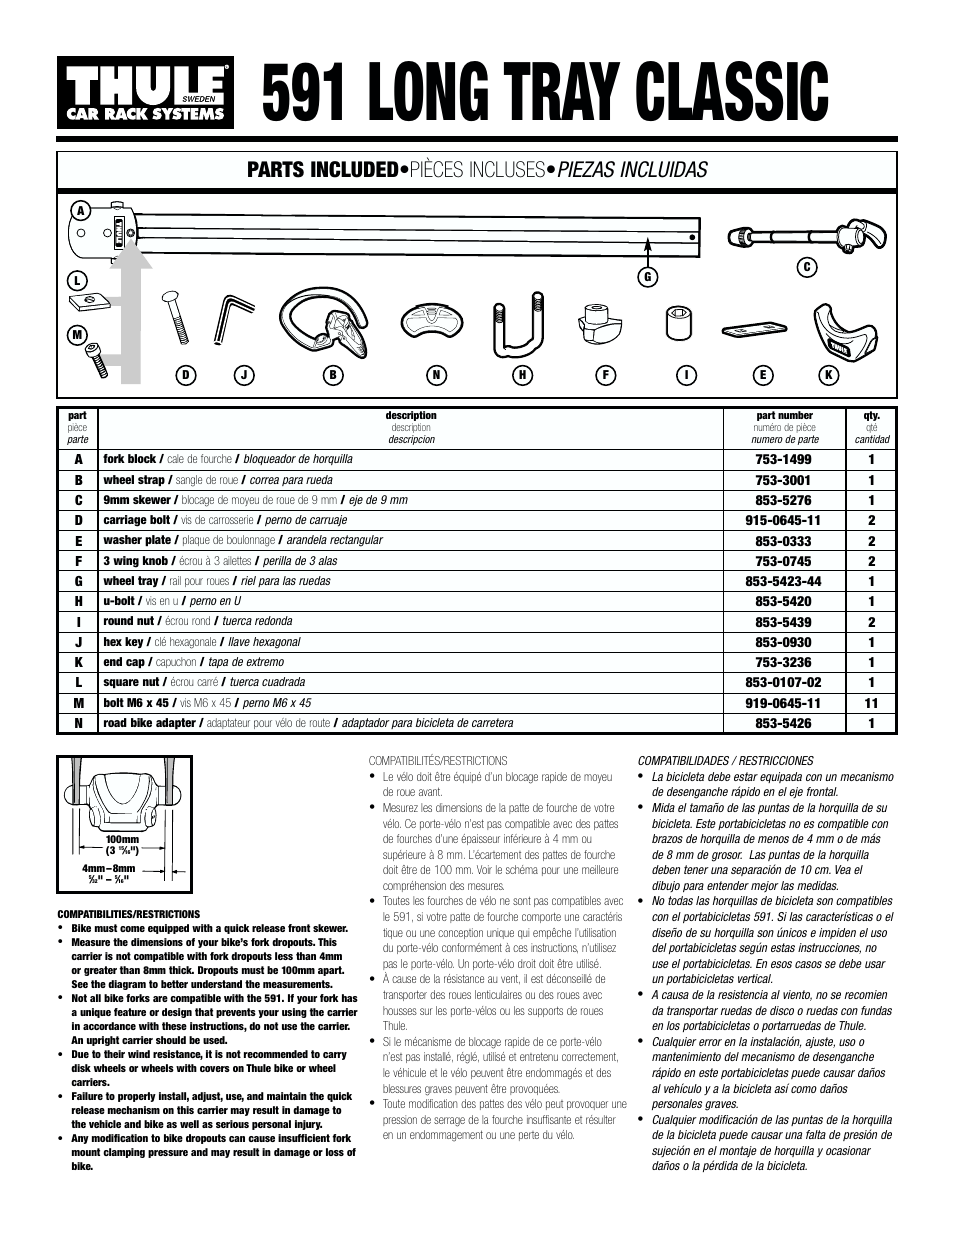 Thule Long Tray Classic 591 User Manual | 6 pages